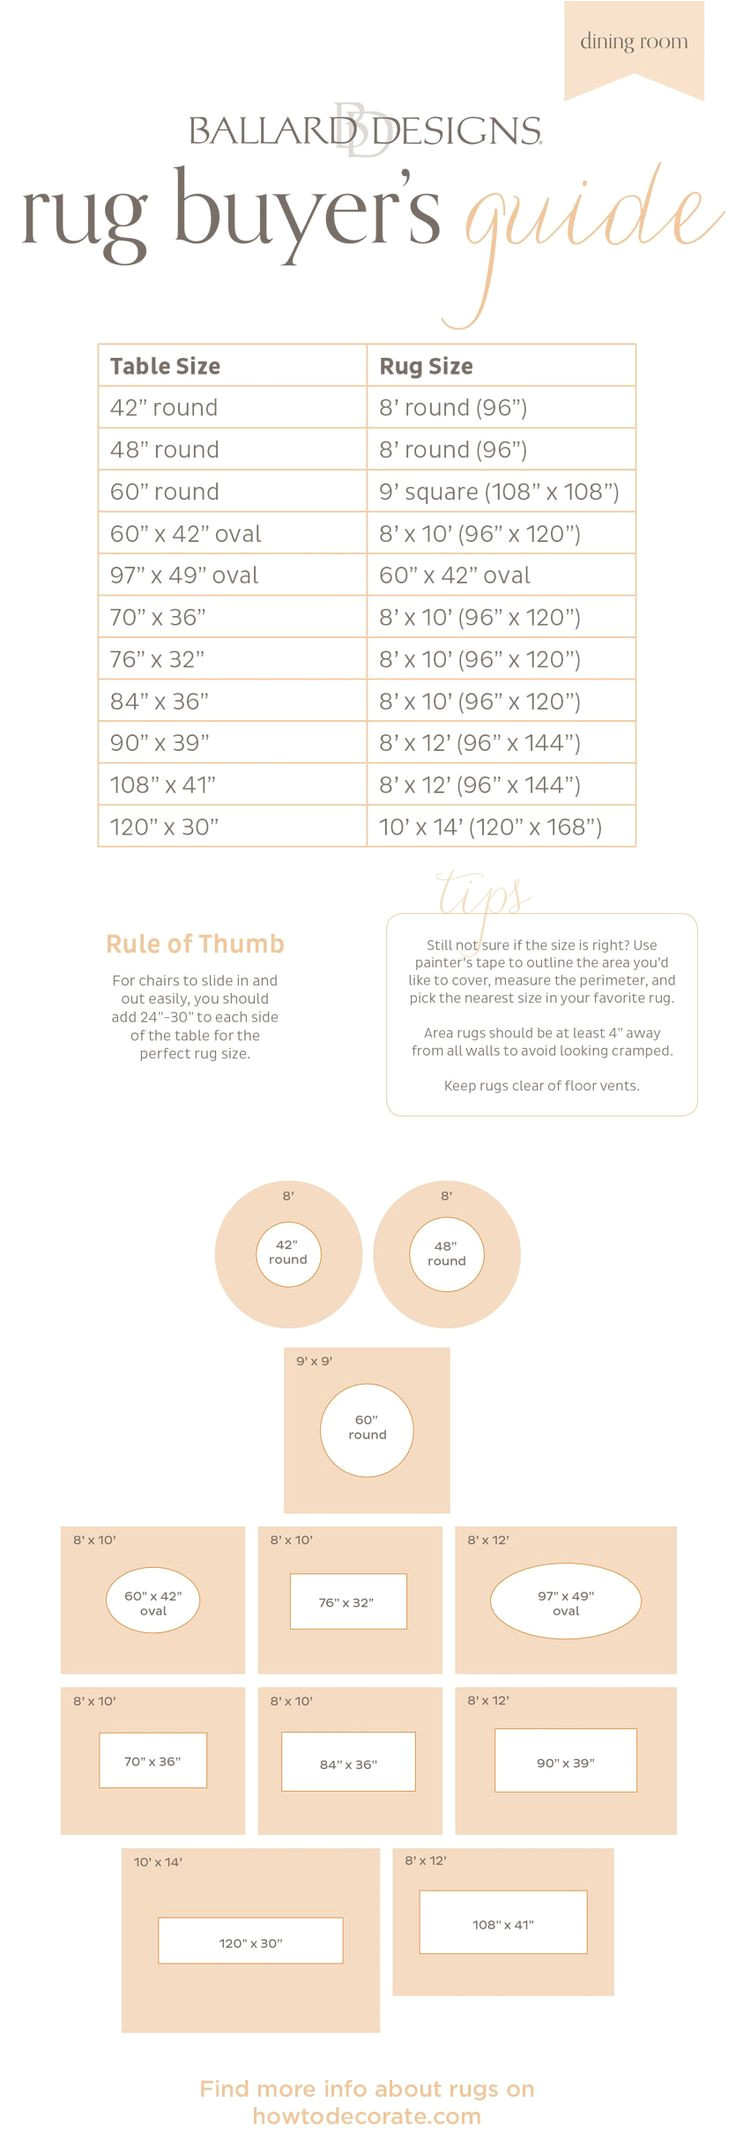 choosing a rug size for the dining room